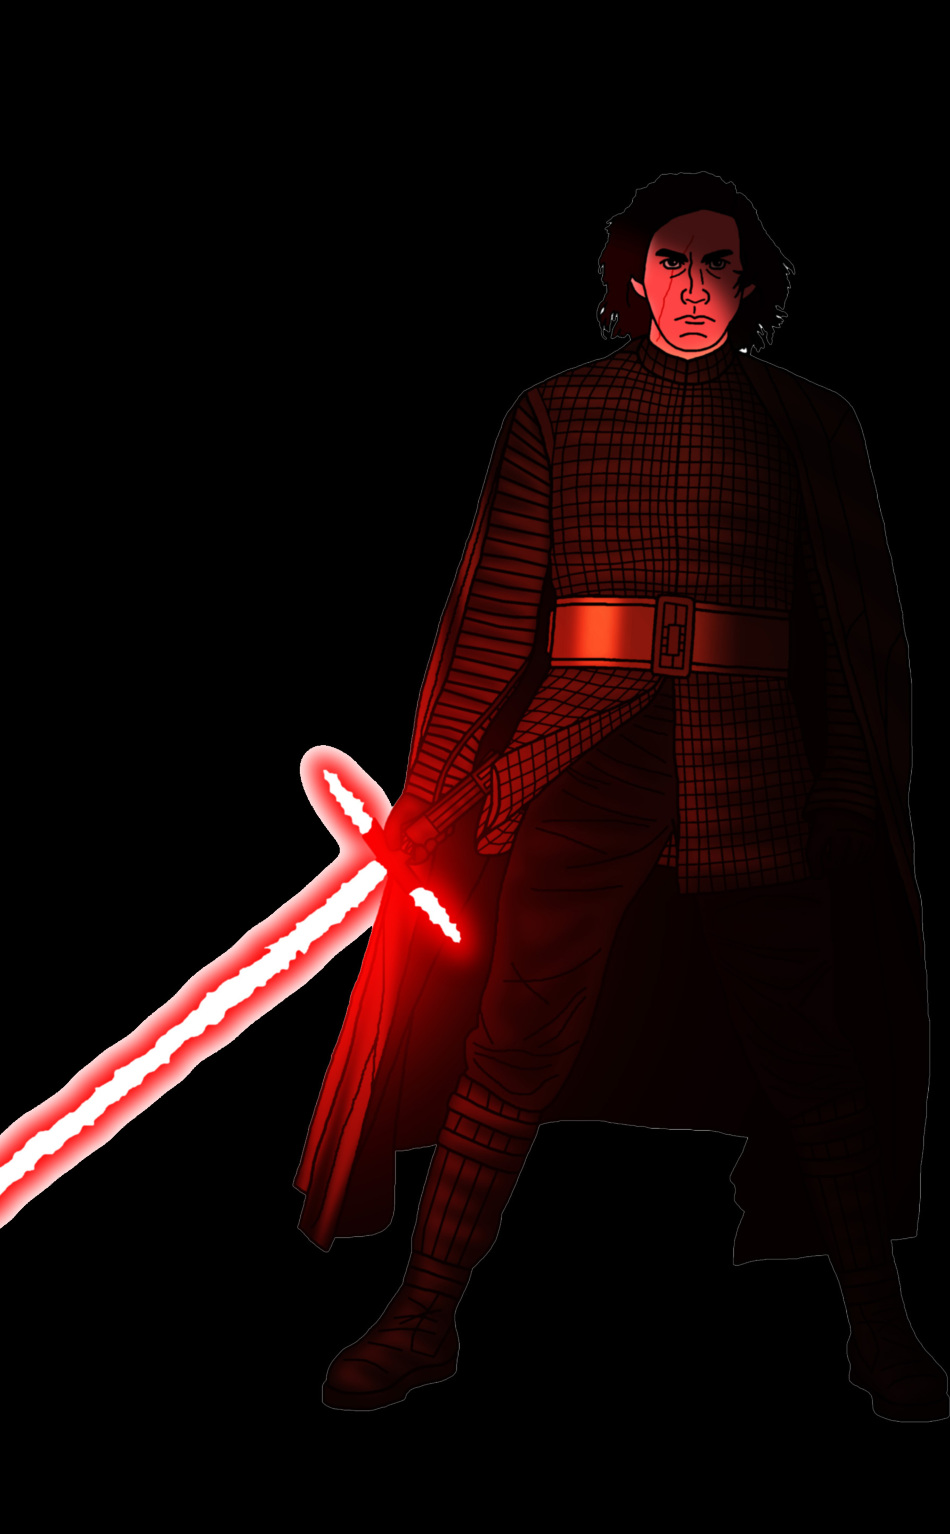 Kylo Ren Star Wars Neon Art Hd 4k Wallpaper 15 Phone Wallpaper